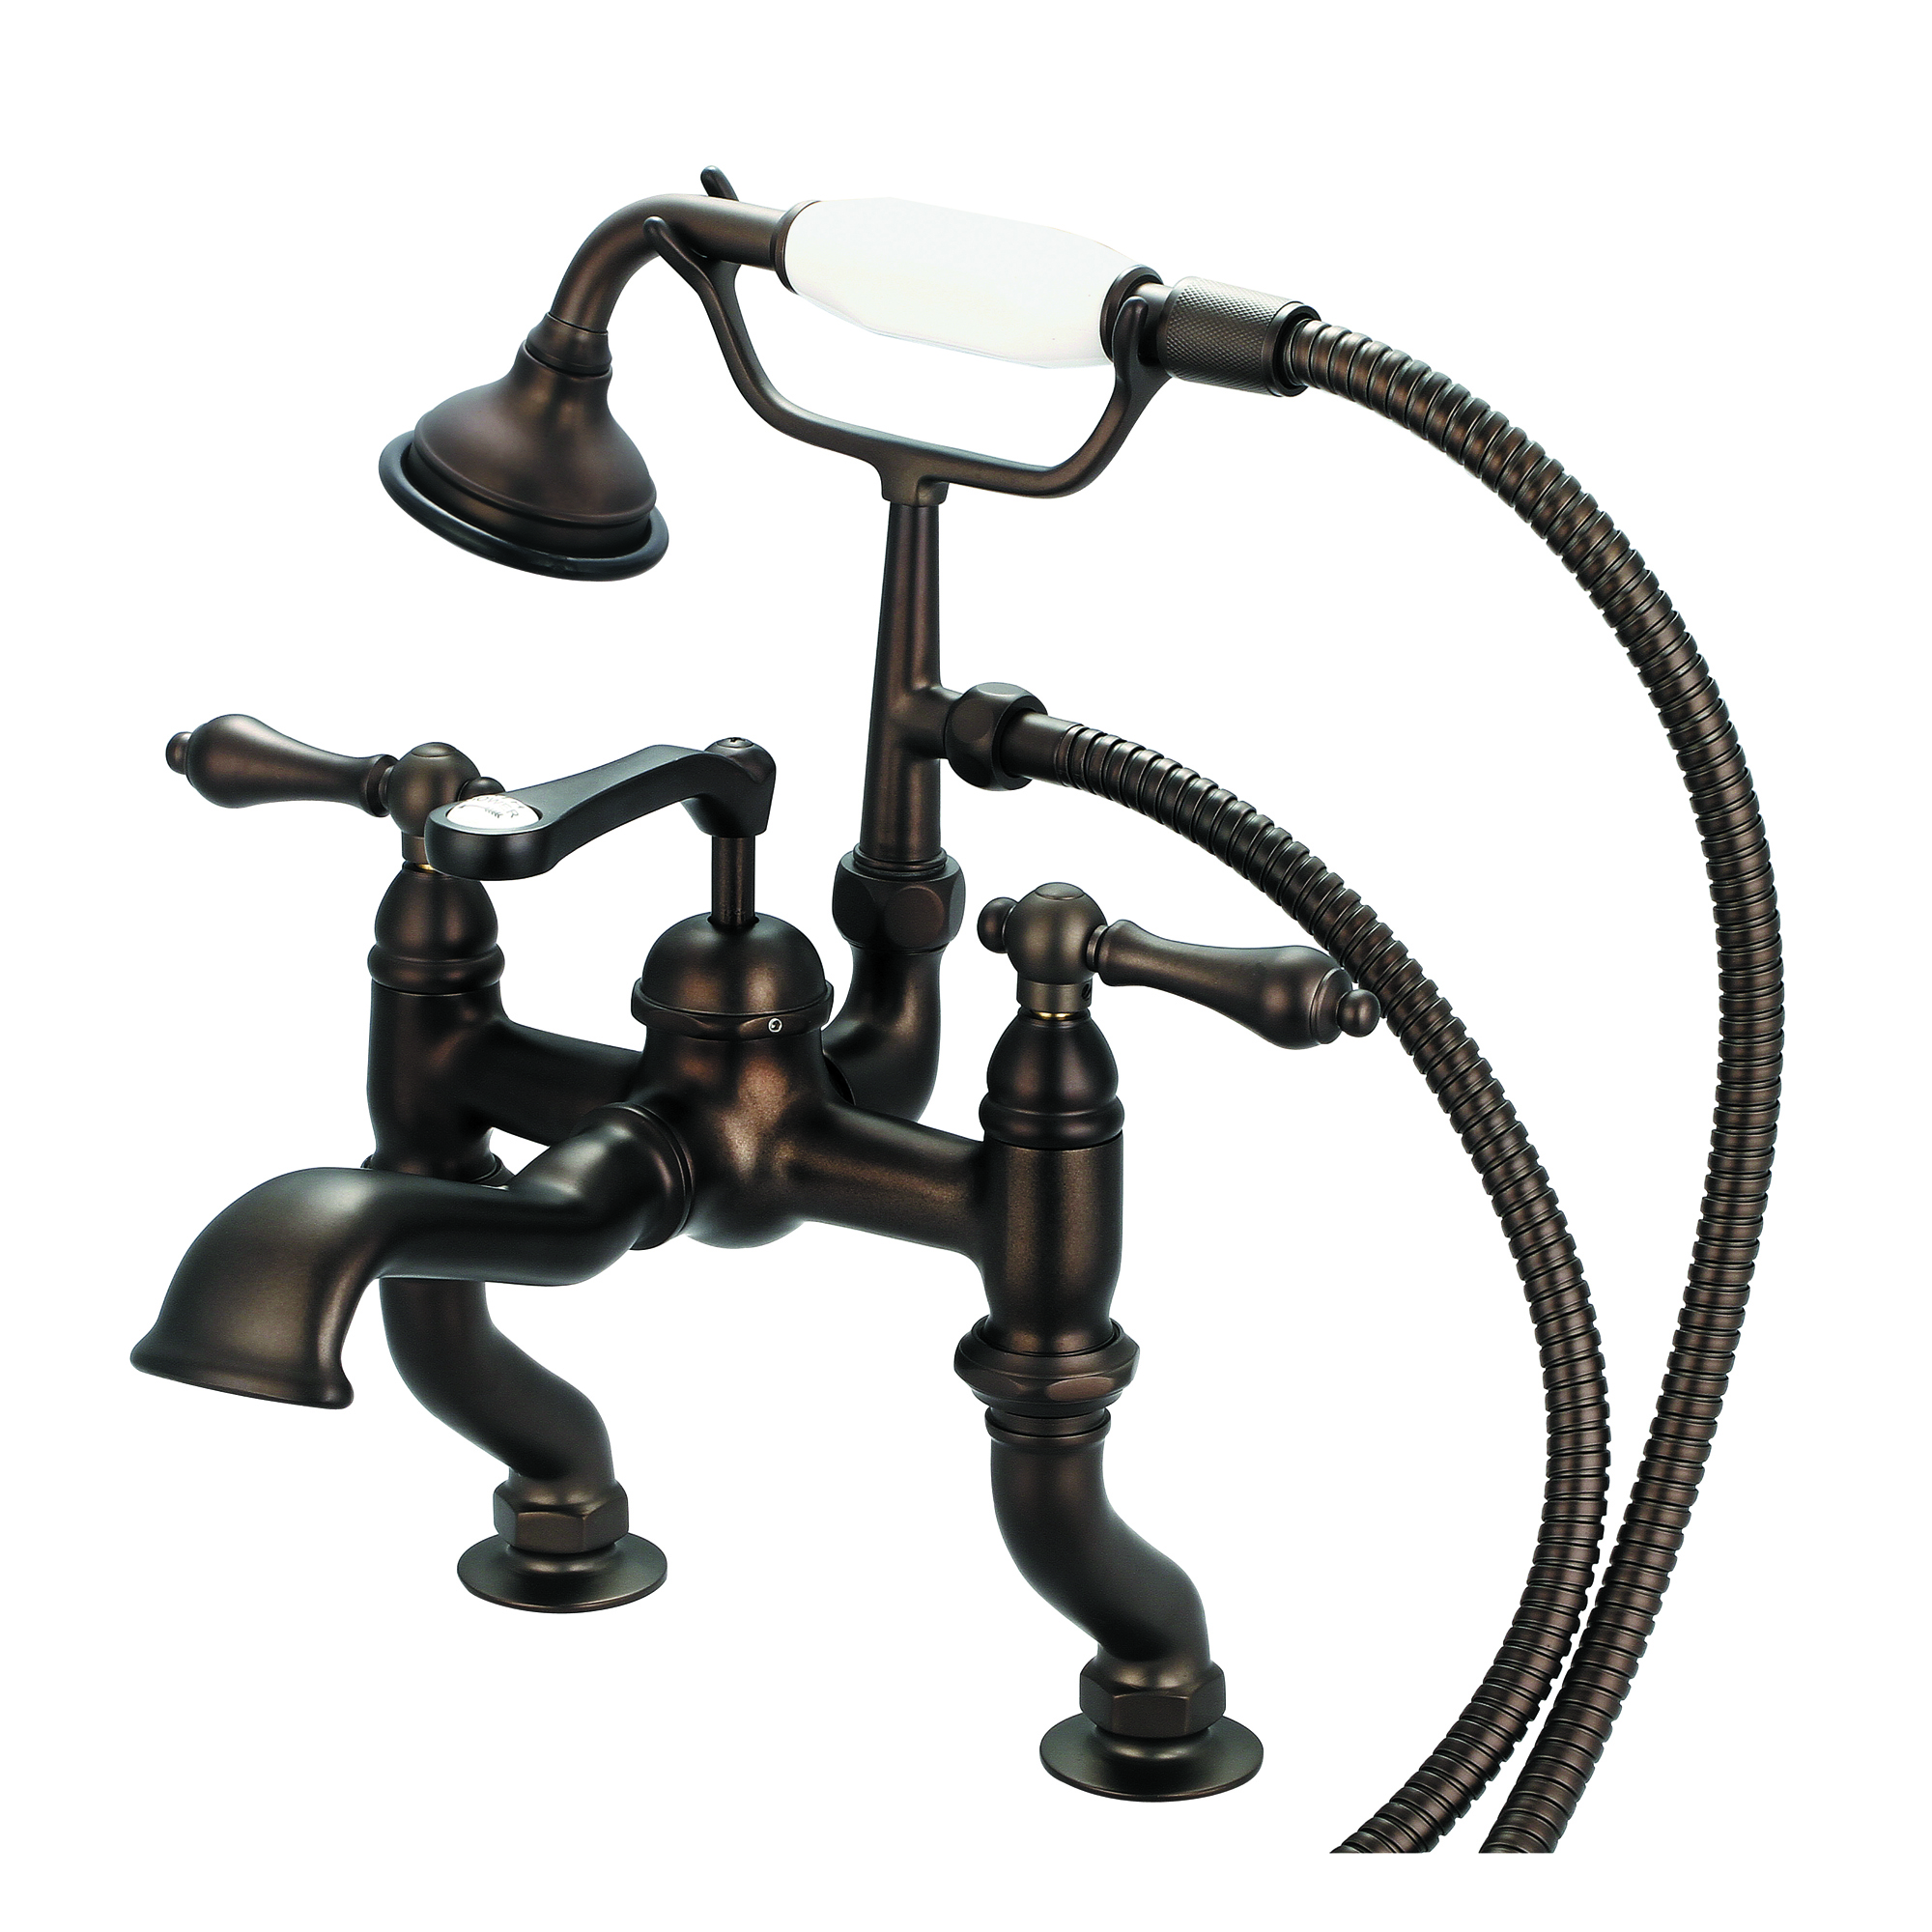 Vintage Classic Adjustable Center Deck Mount Tub Faucet With Handheld Shower in Oil-rubbed Bronze Finish Finish With Metal Lever Handles Without Labels